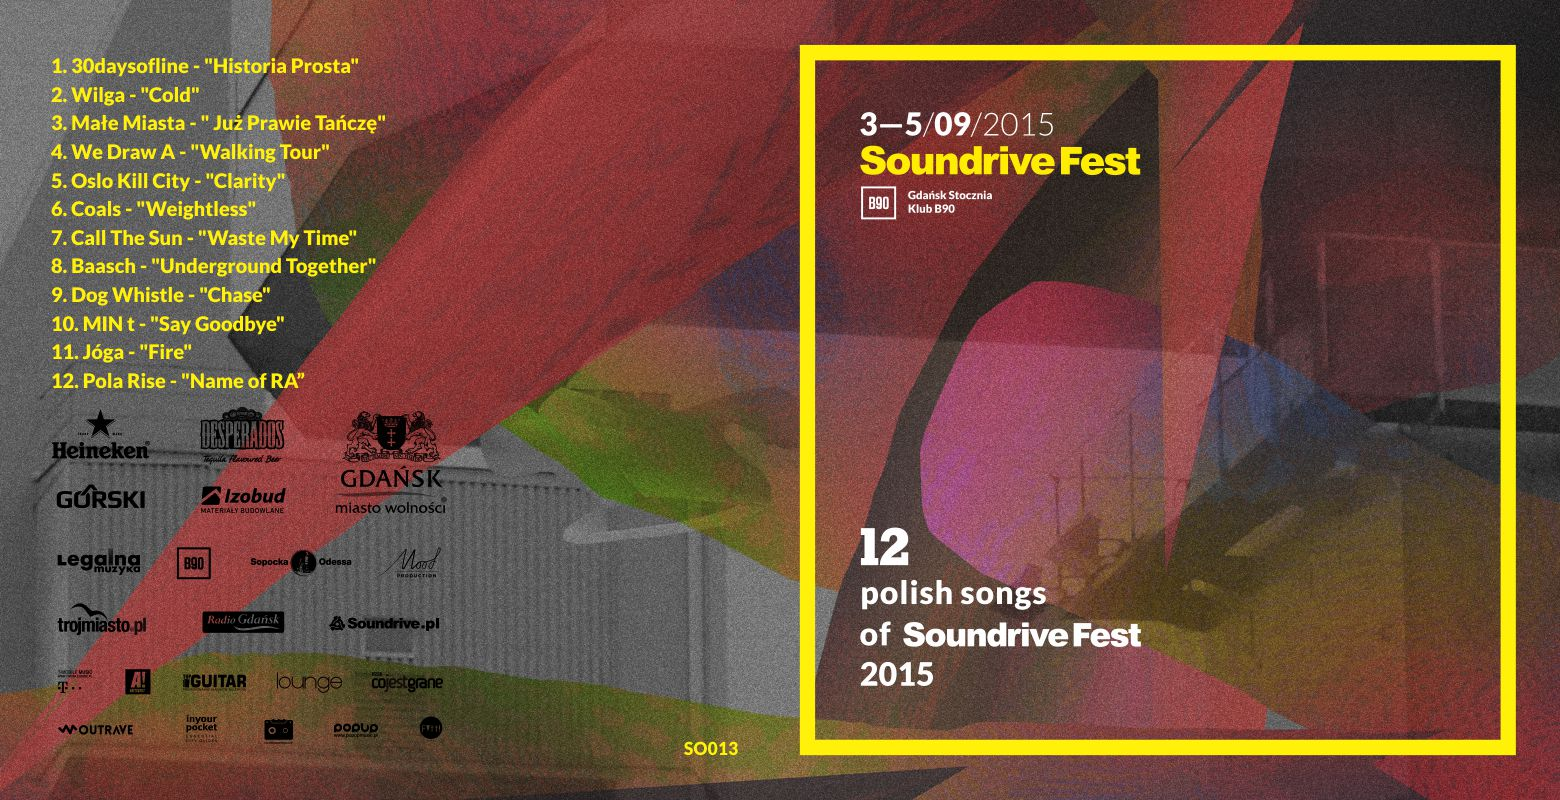 12 polish songs of Soundrive Fest 2015_cover (2)